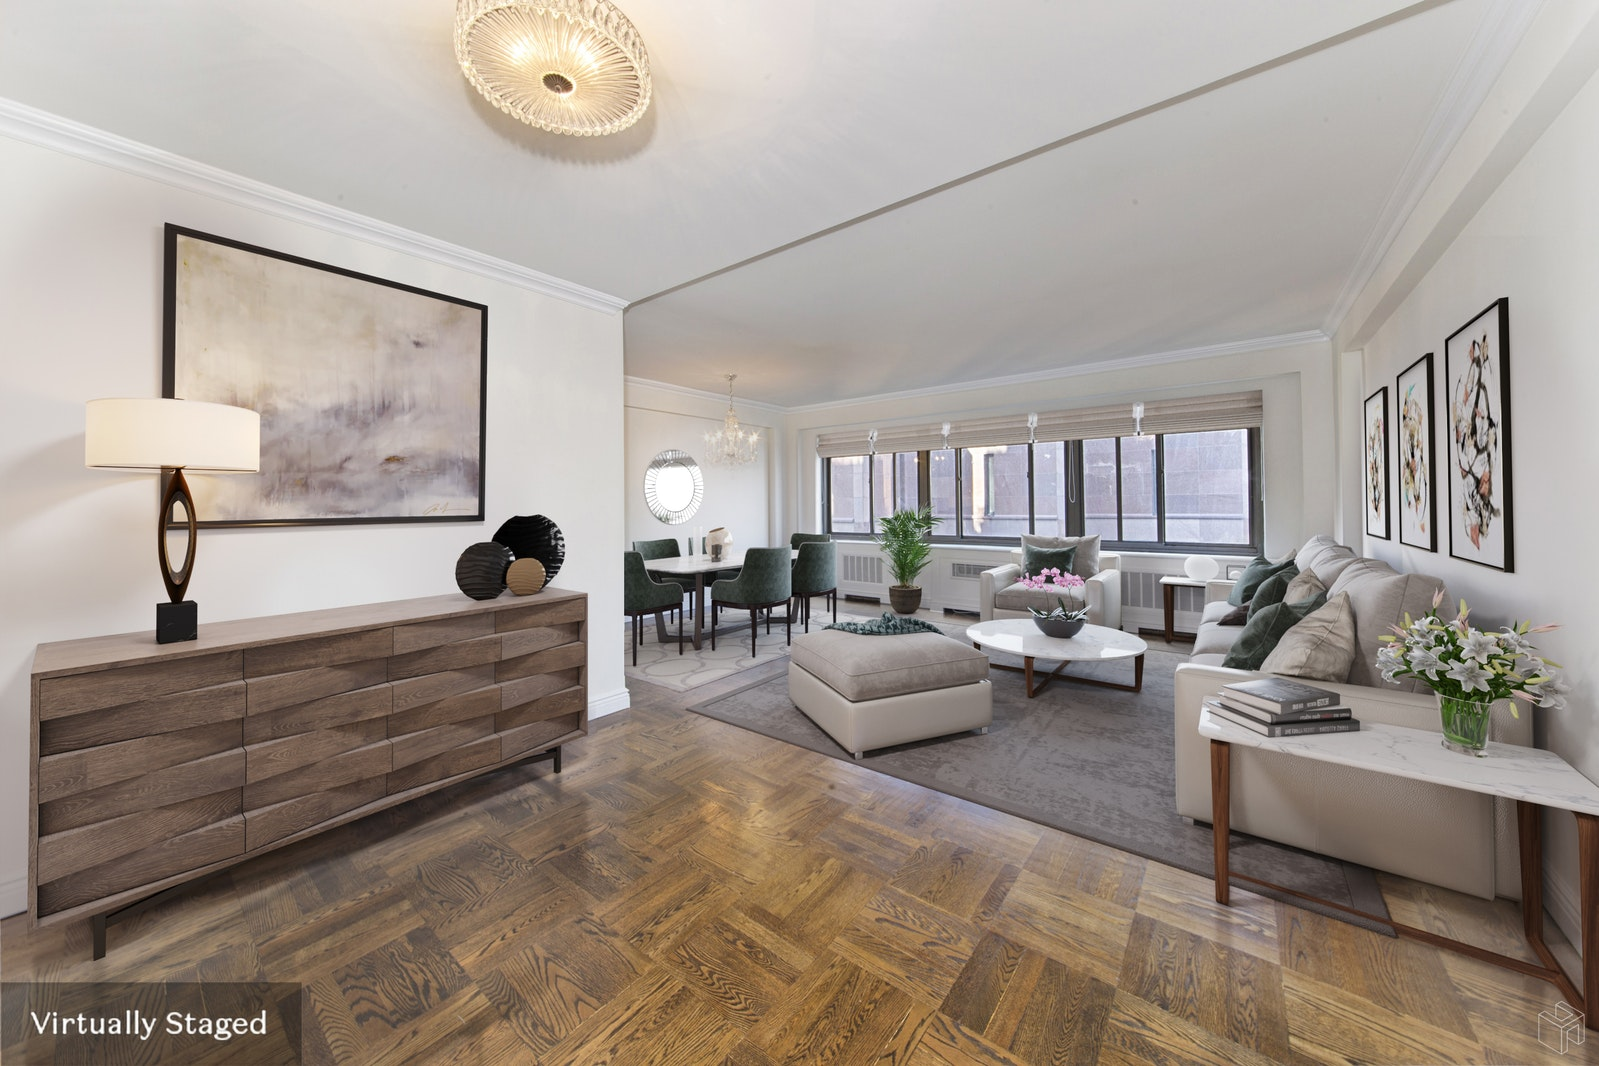 715 Park Avenue 11d, Upper East Side, NYC, 10021, Price Not Disclosed, Rented Property, Halstead Real Estate, Photo 1